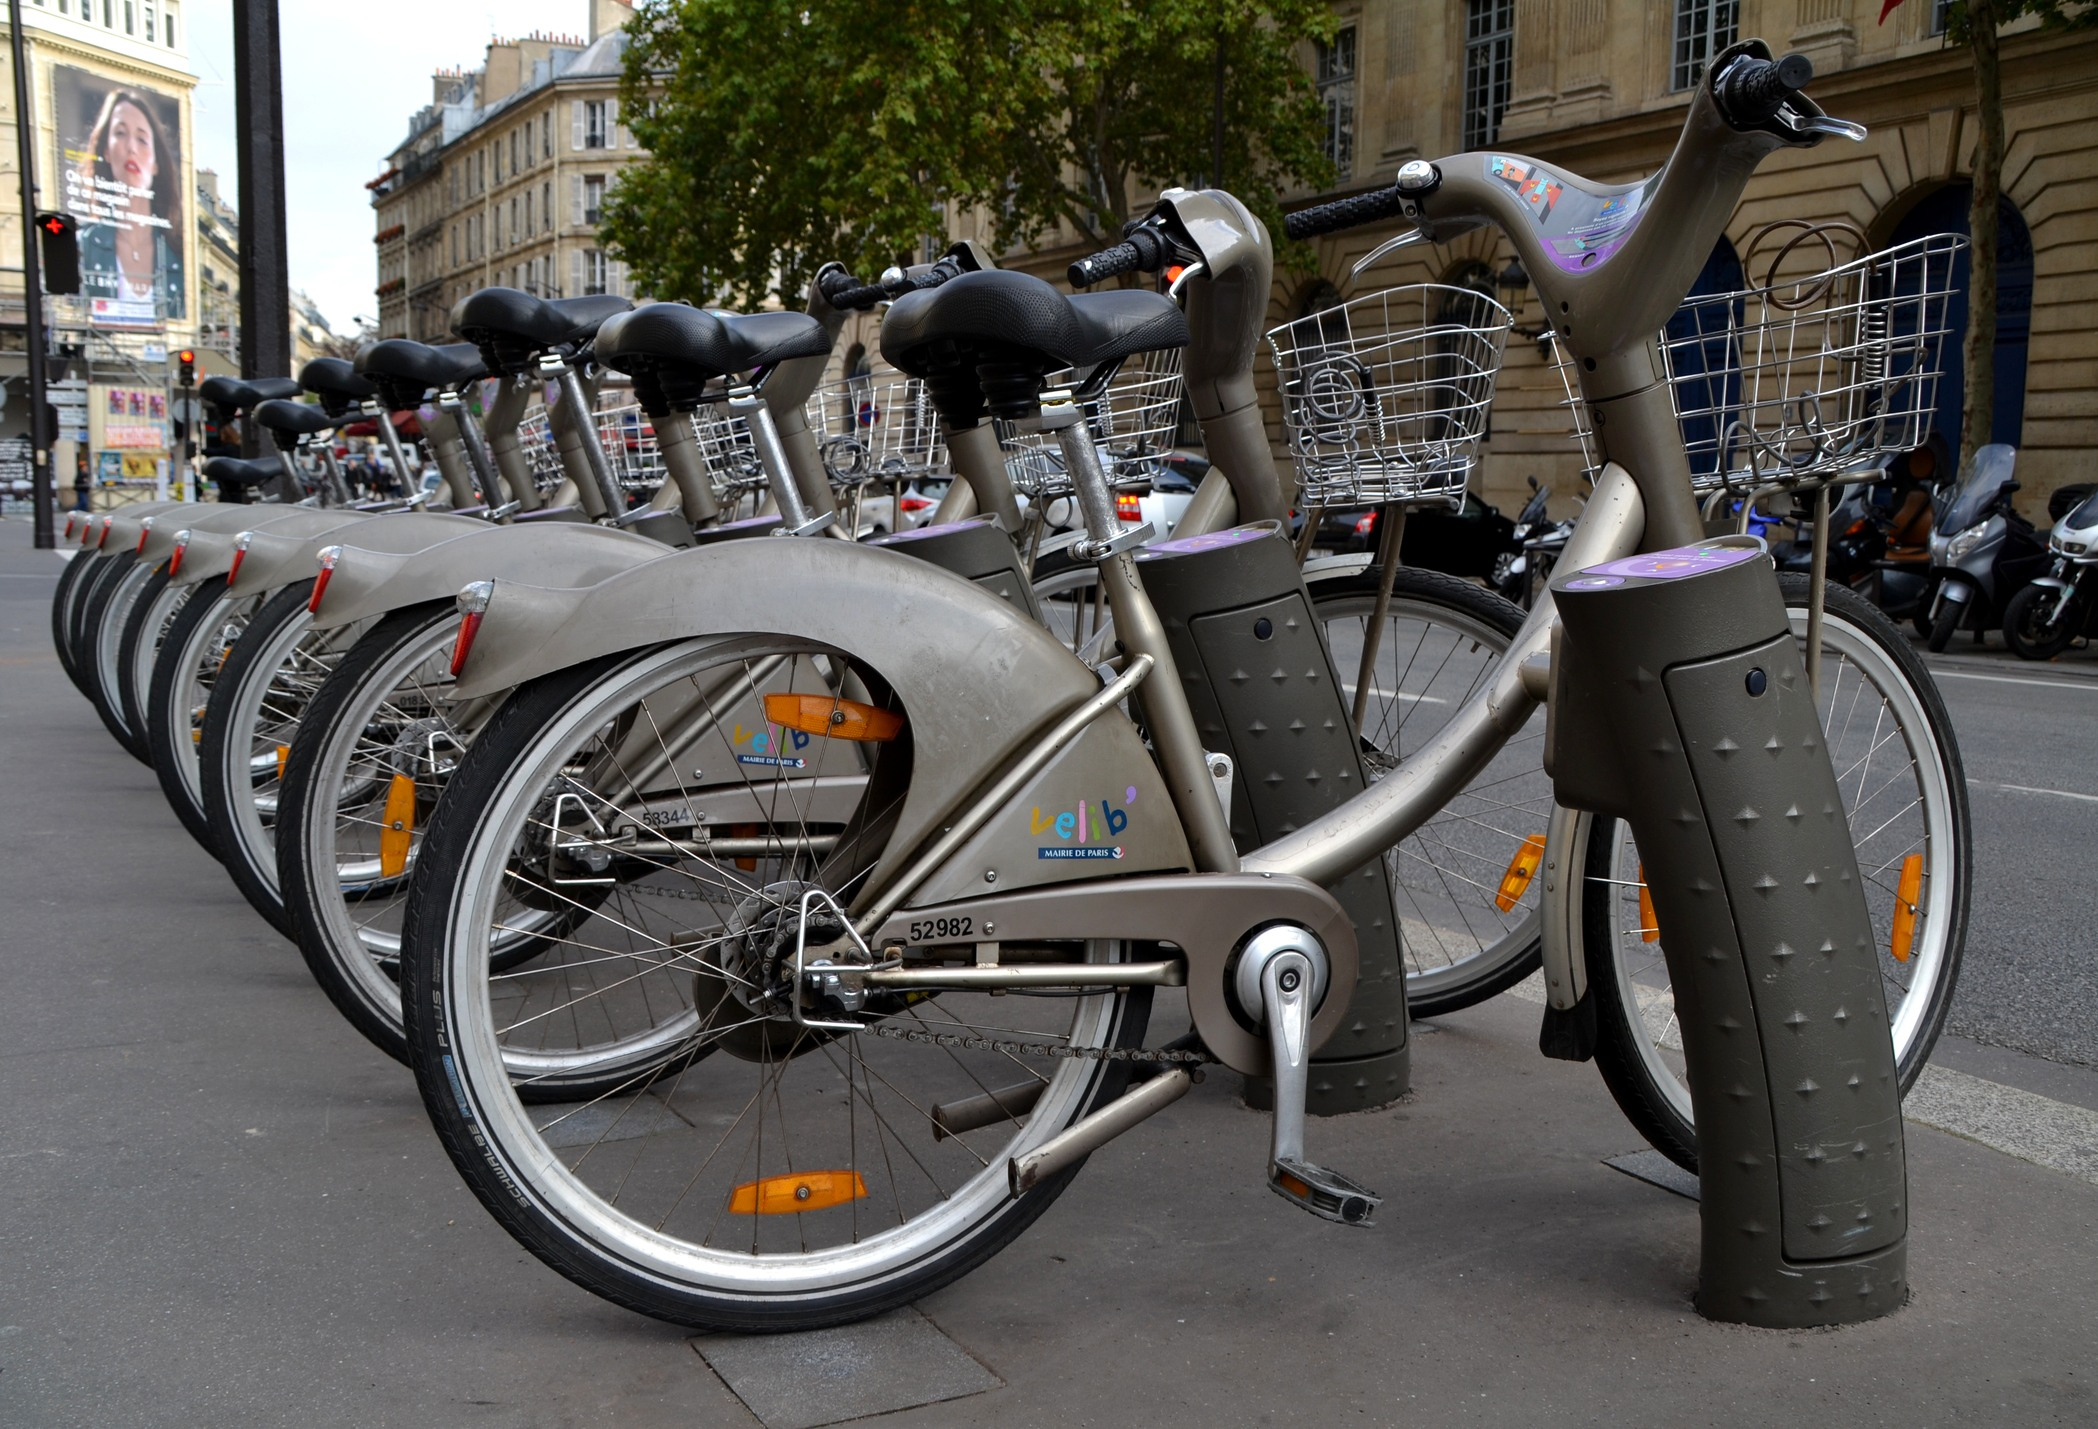 Bicycles of the Velib service in Paris